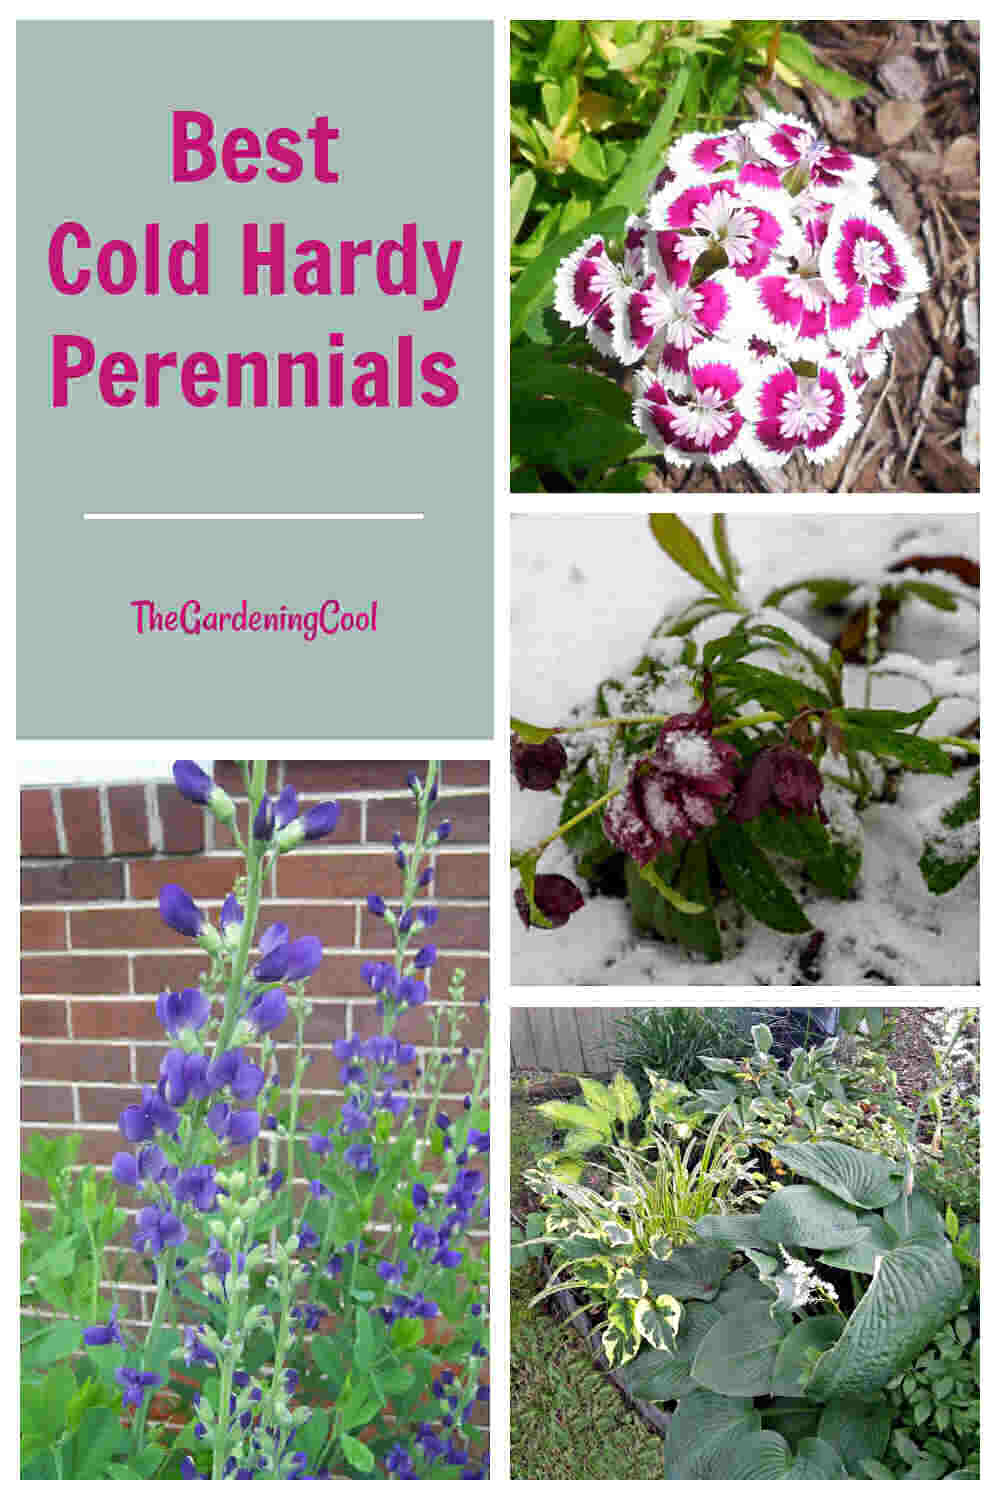 Sweet William, Baptisia, hellebore in snow and hostas with words Best Cold Hardy Perennials.